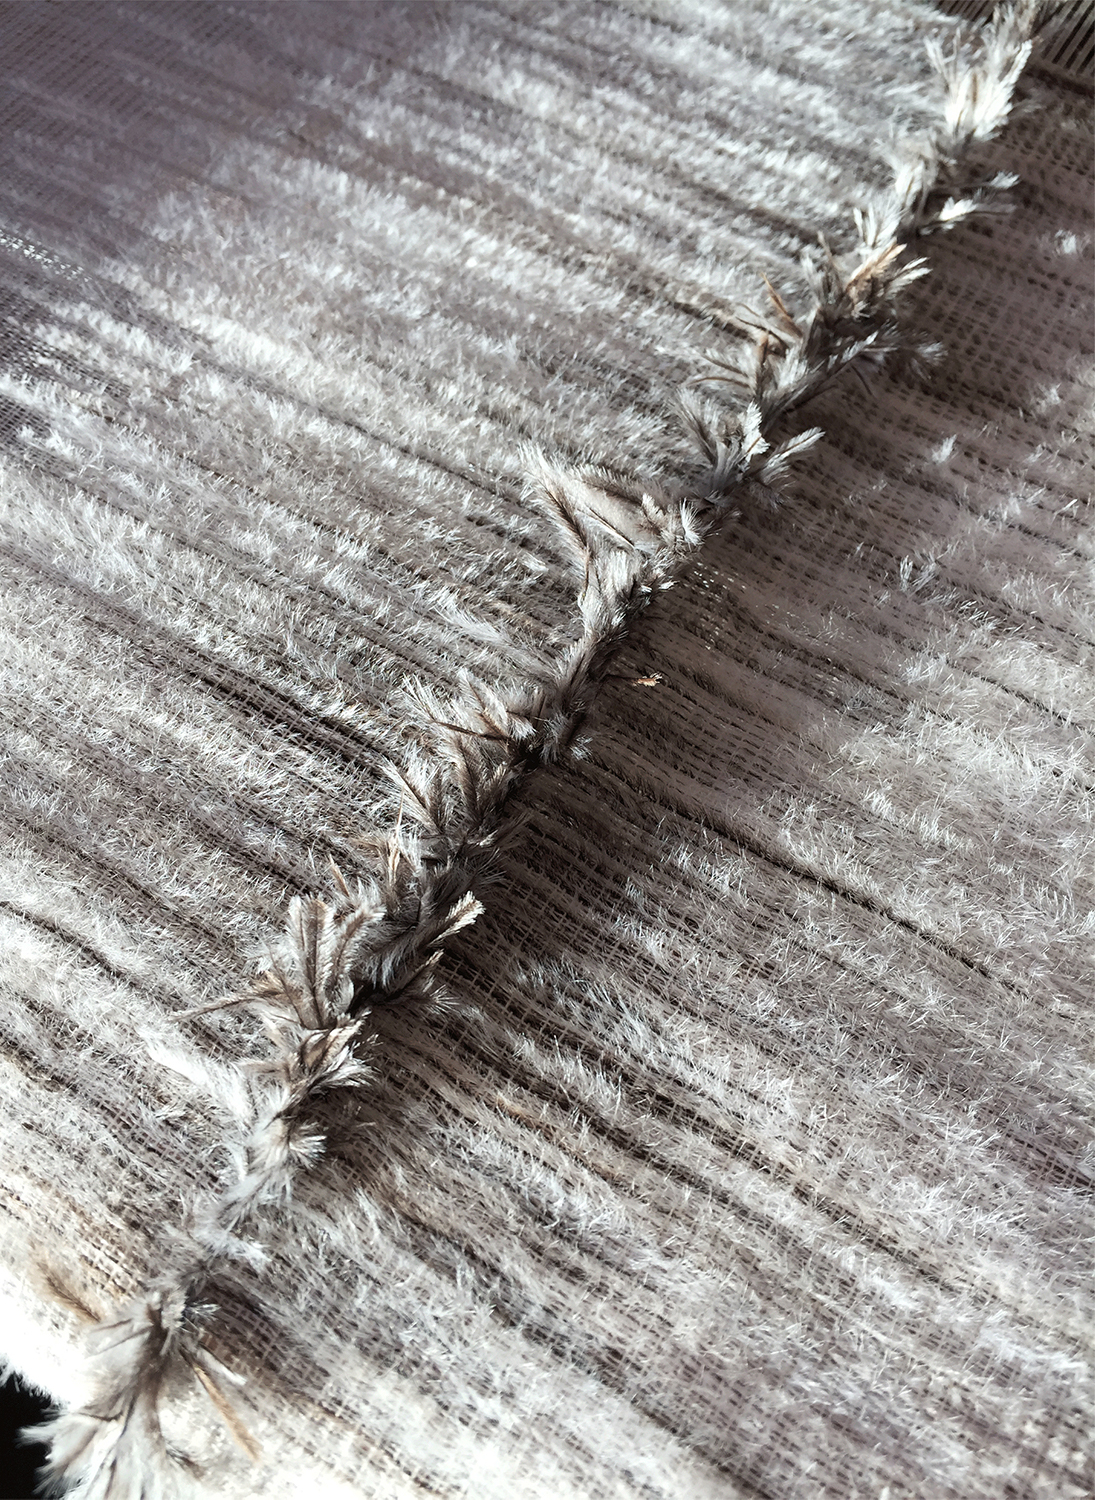 Close up shot of the textures created using only ostrich feathers in the 'Feathered Fabrics'.